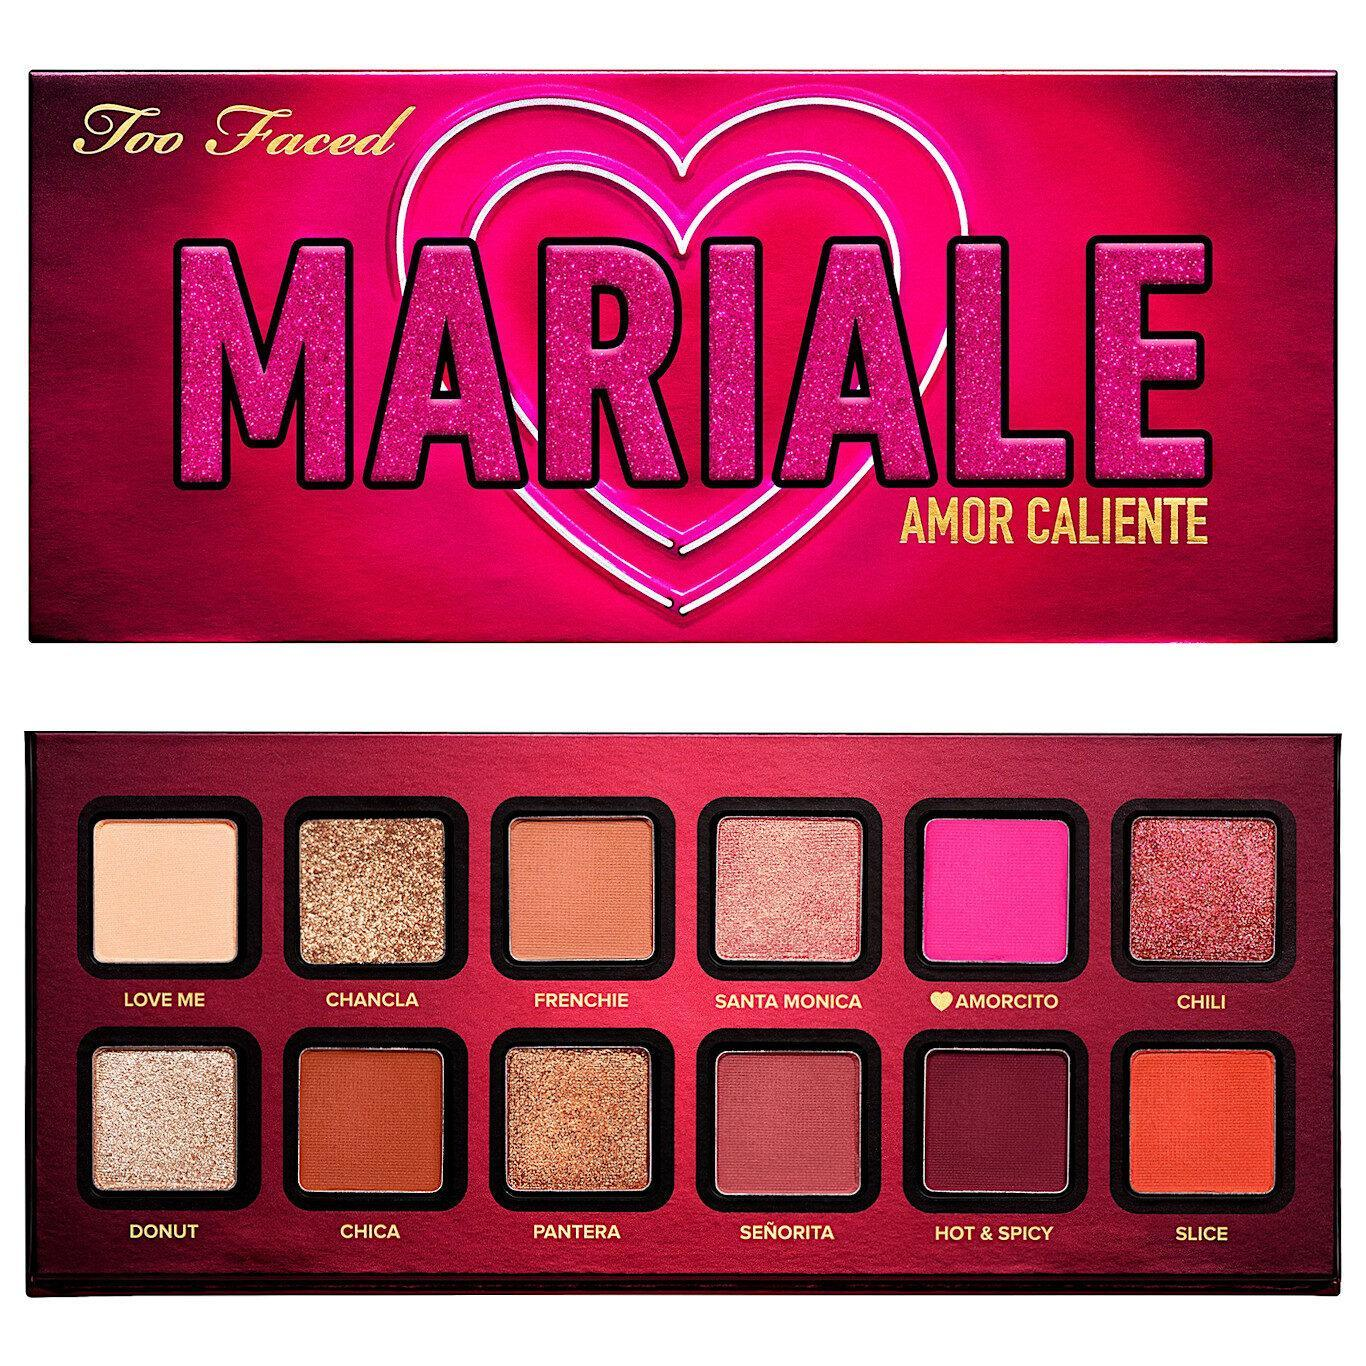 Too Faced x Mariale (Amor Caliente) Post Cover